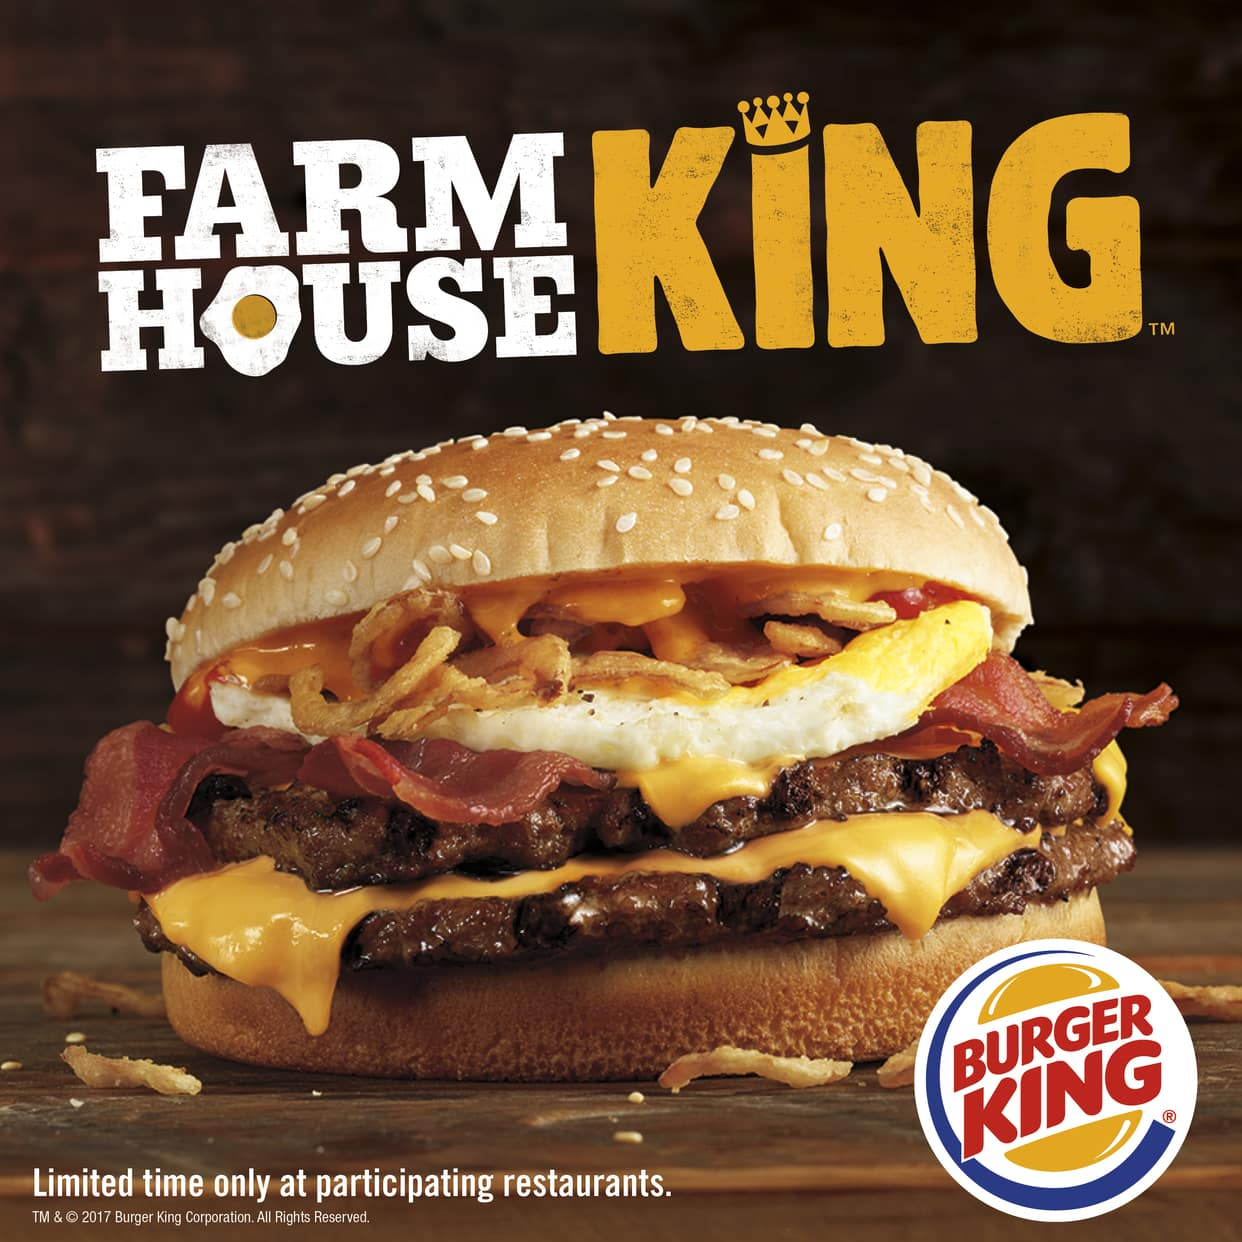 Burger Kings New Farmhouse King Burger Is Its Unhealthiest Creation Yet